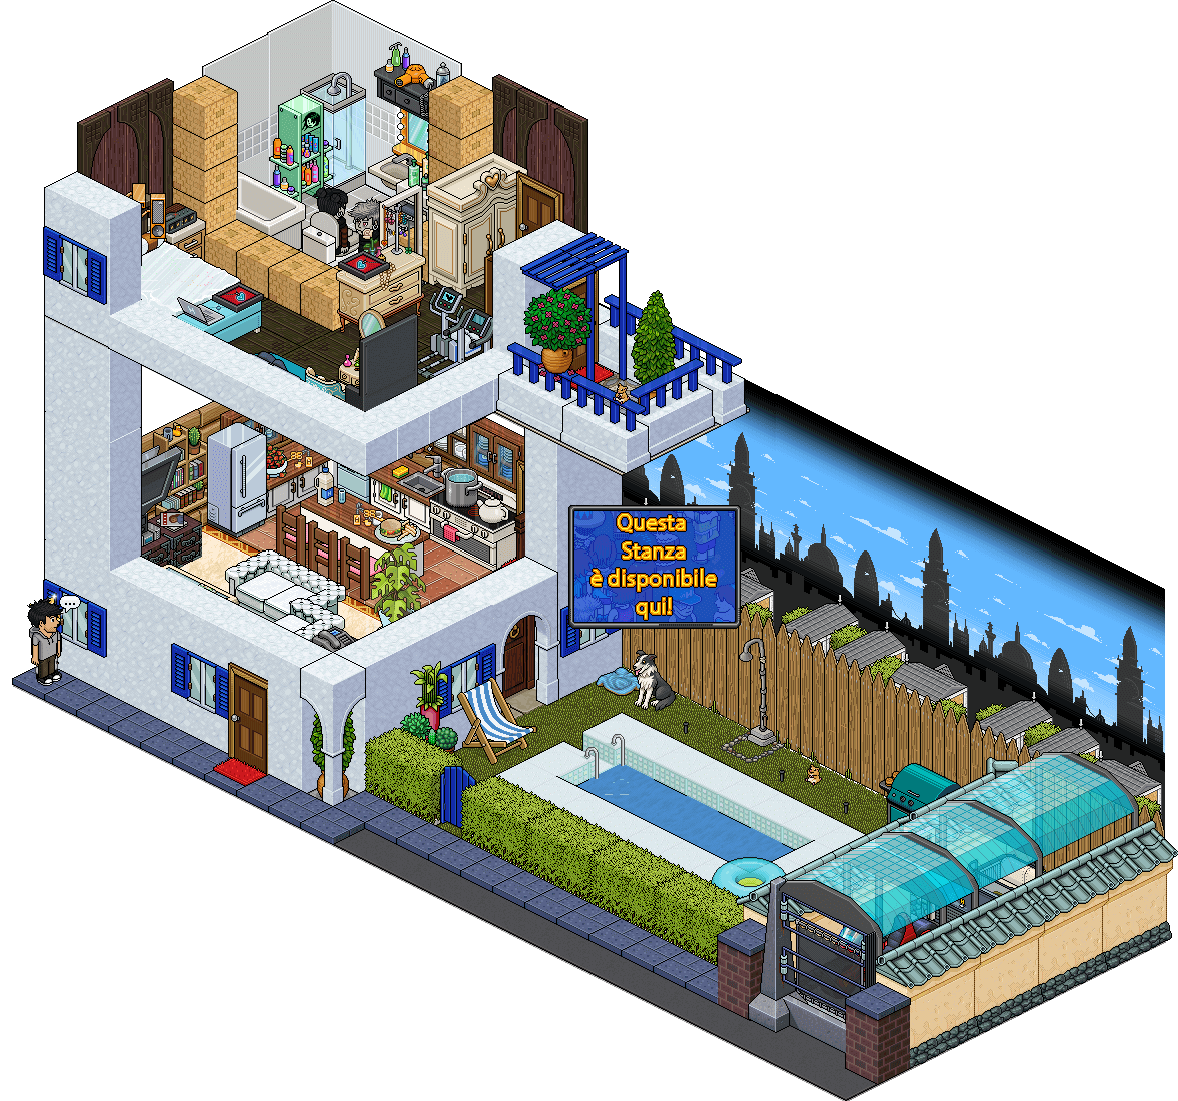 [ALL] Affare stanza Dolce Casa in catalogo su Habbo - Pagina 2 Affare18